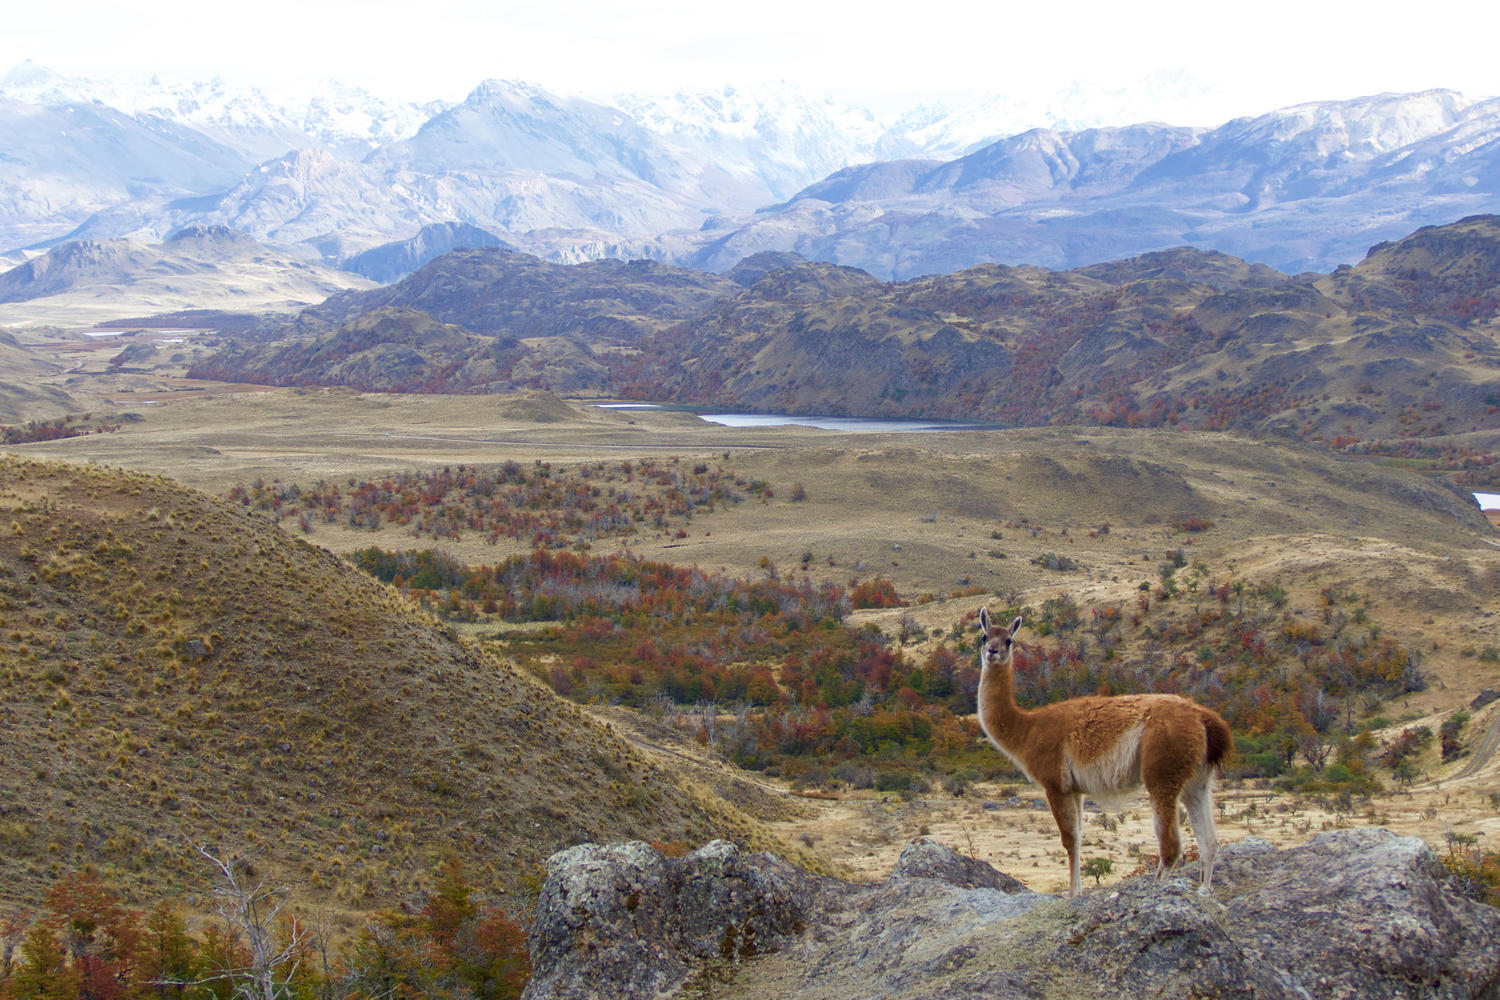 A guanaco in front of the Chacabuco Valley and the future Parque Patagonia